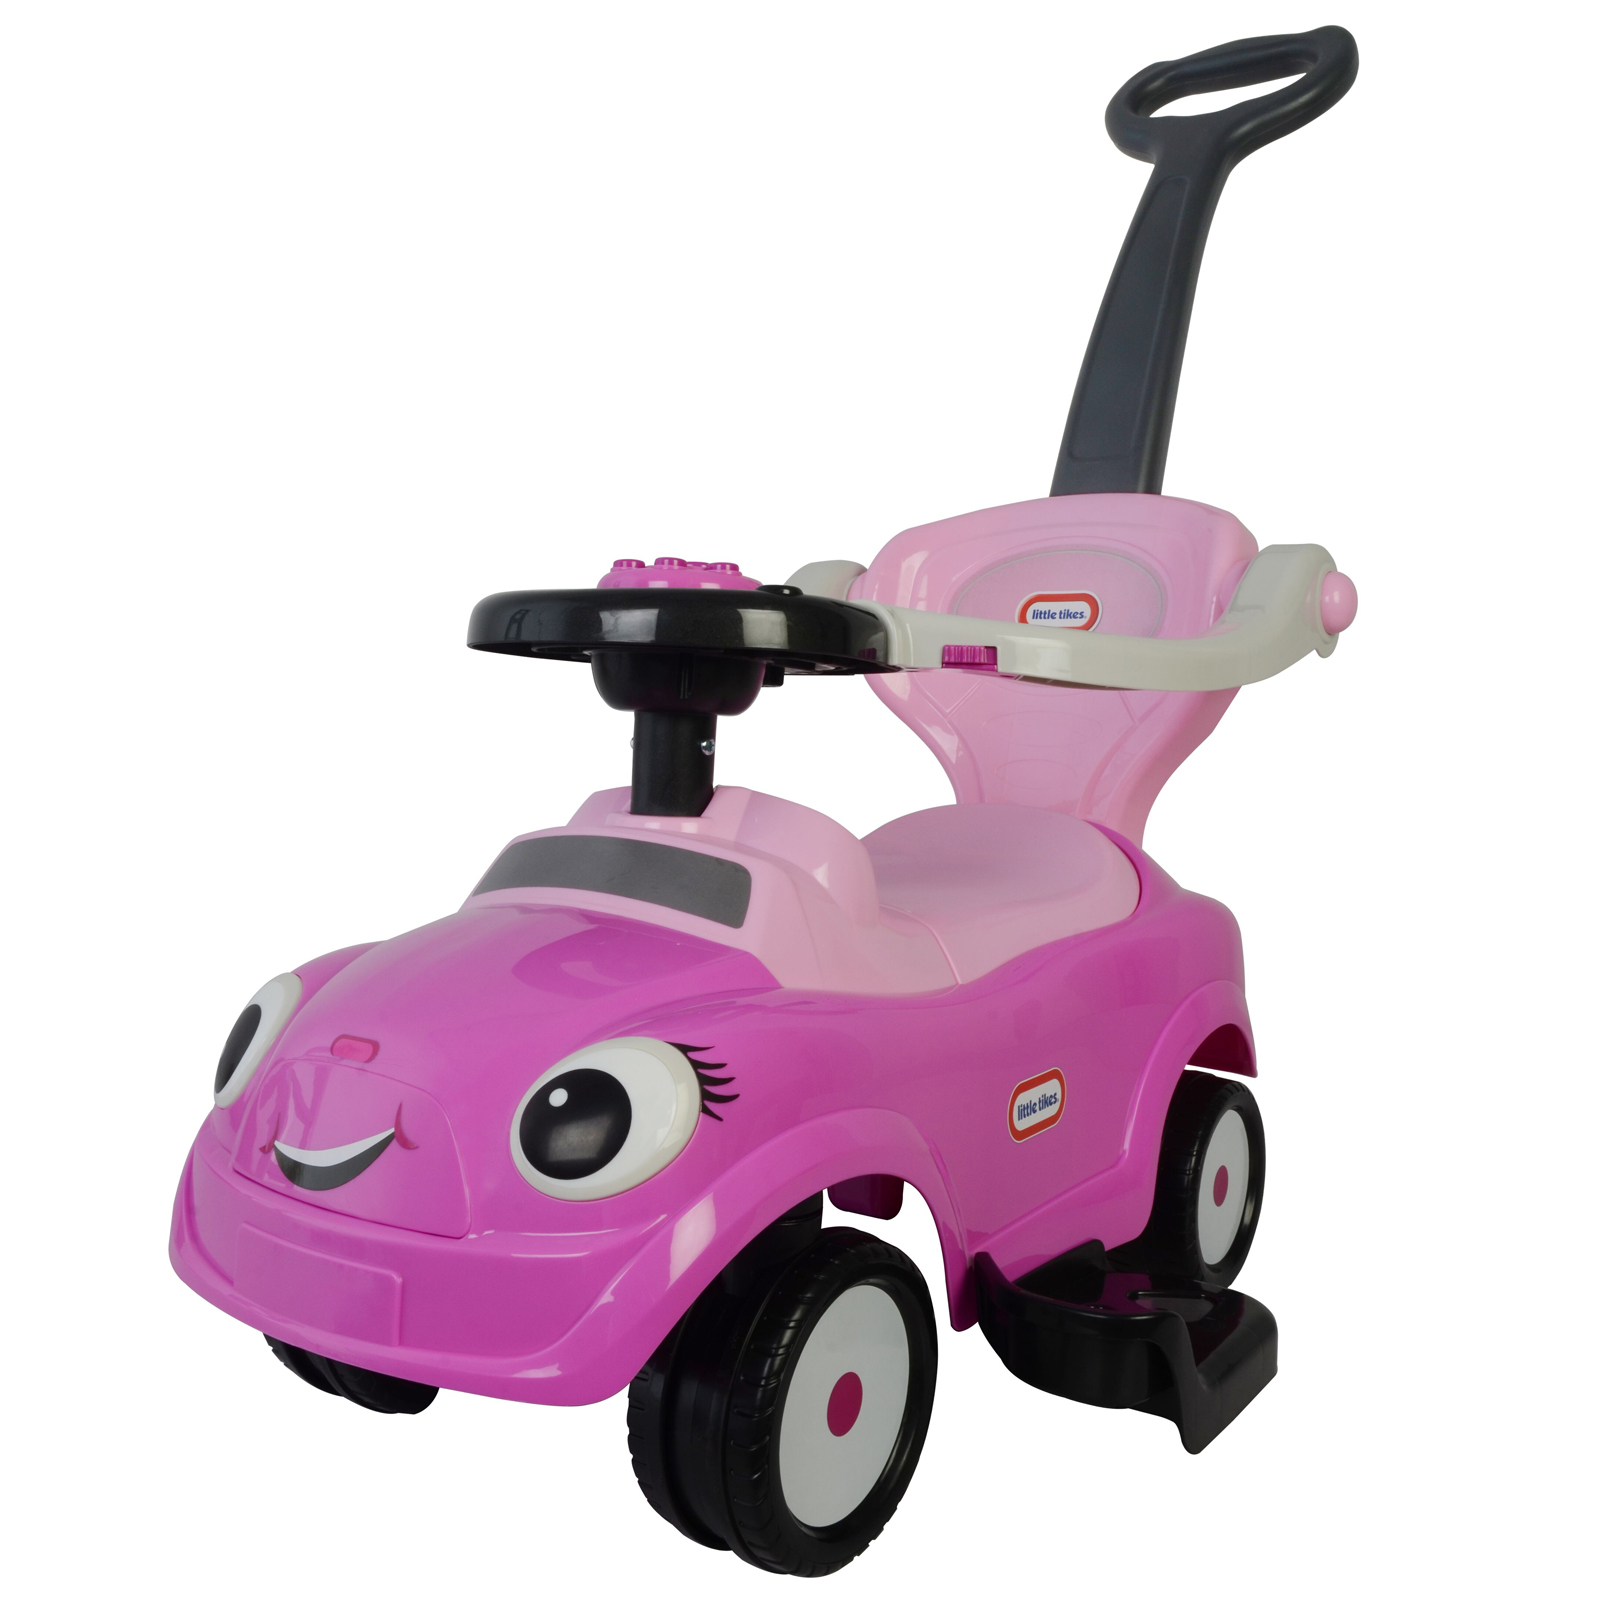 Little Tikes Kids 3 in 1 Ride On Push Car Stroller - Pink